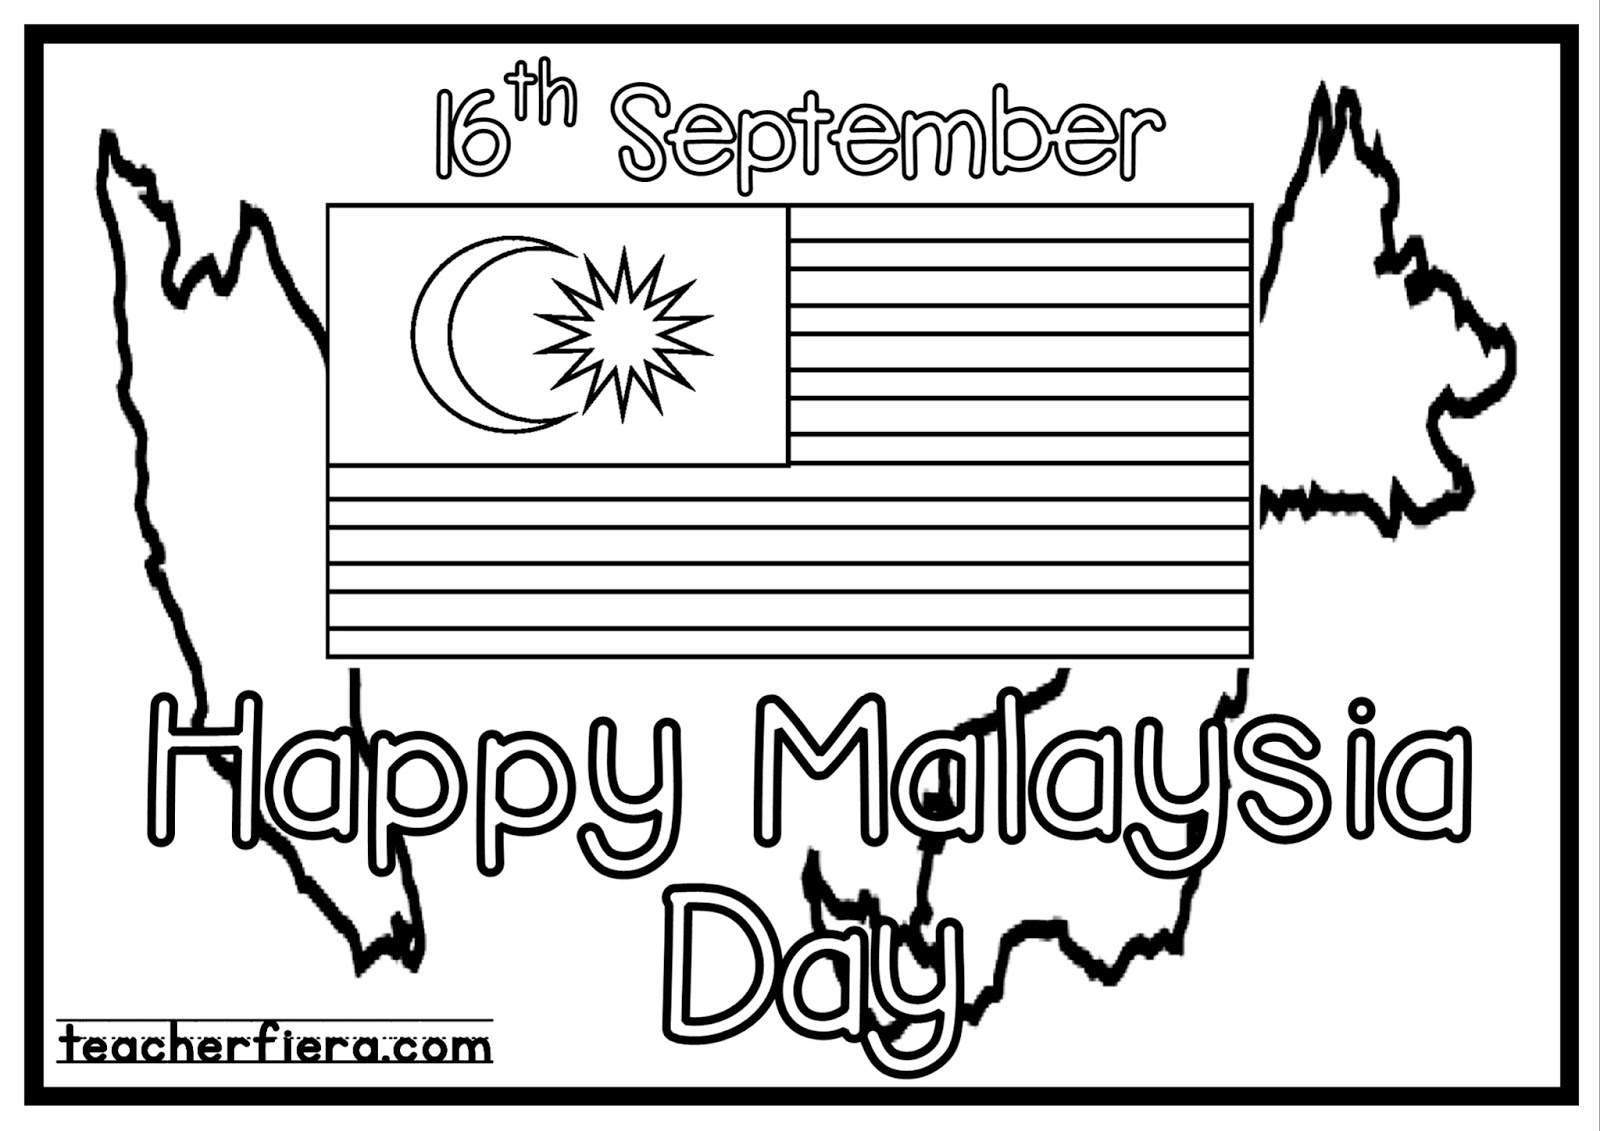 teacherfieracom HAPPY MALAYSIA DAY 16TH SEPTEMBER